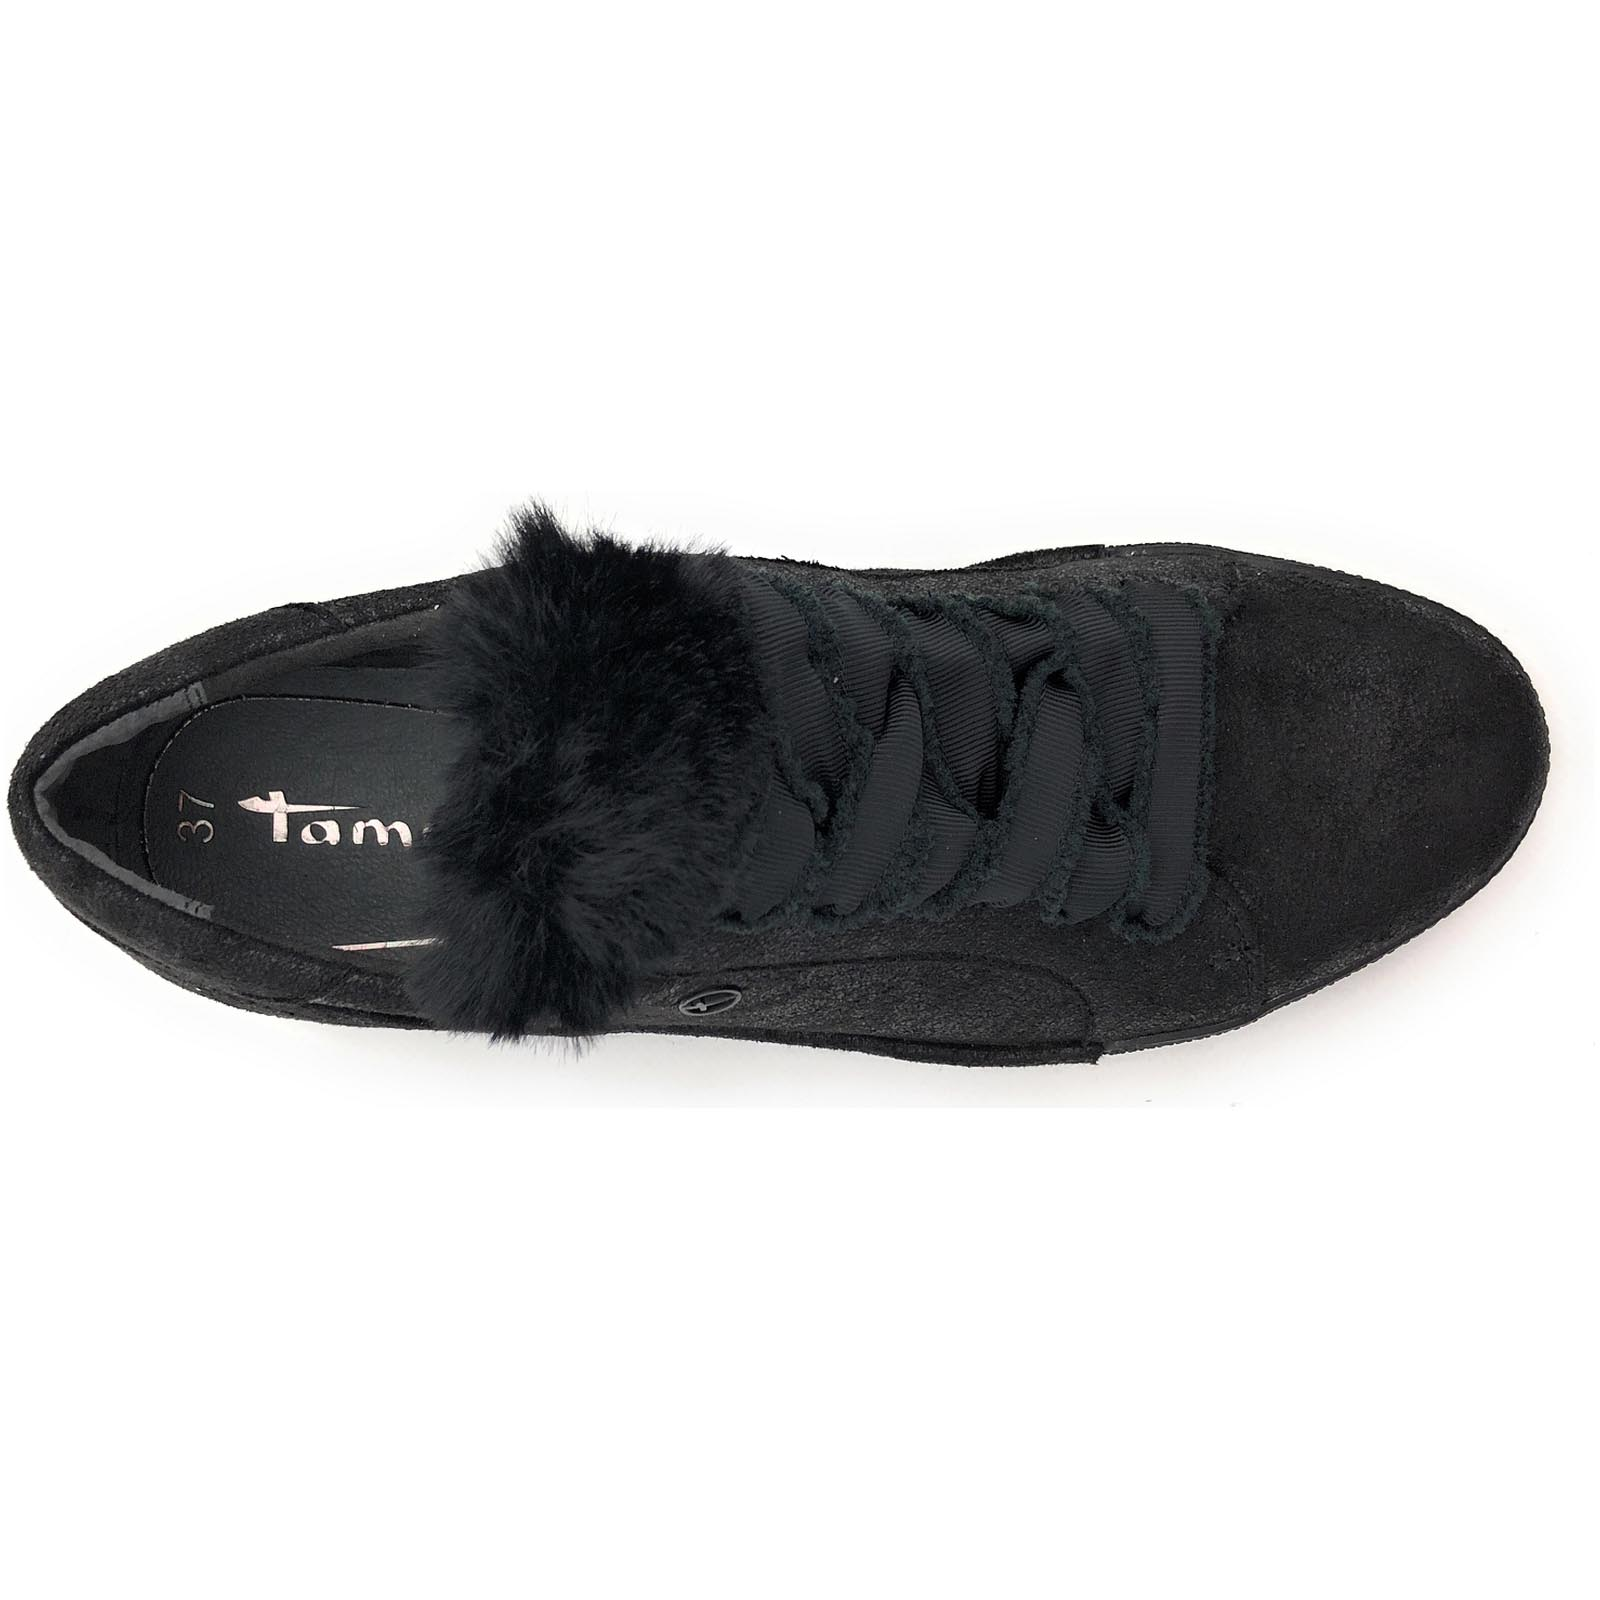 Tamaris baskets mode 23726.21 noir8024501_5